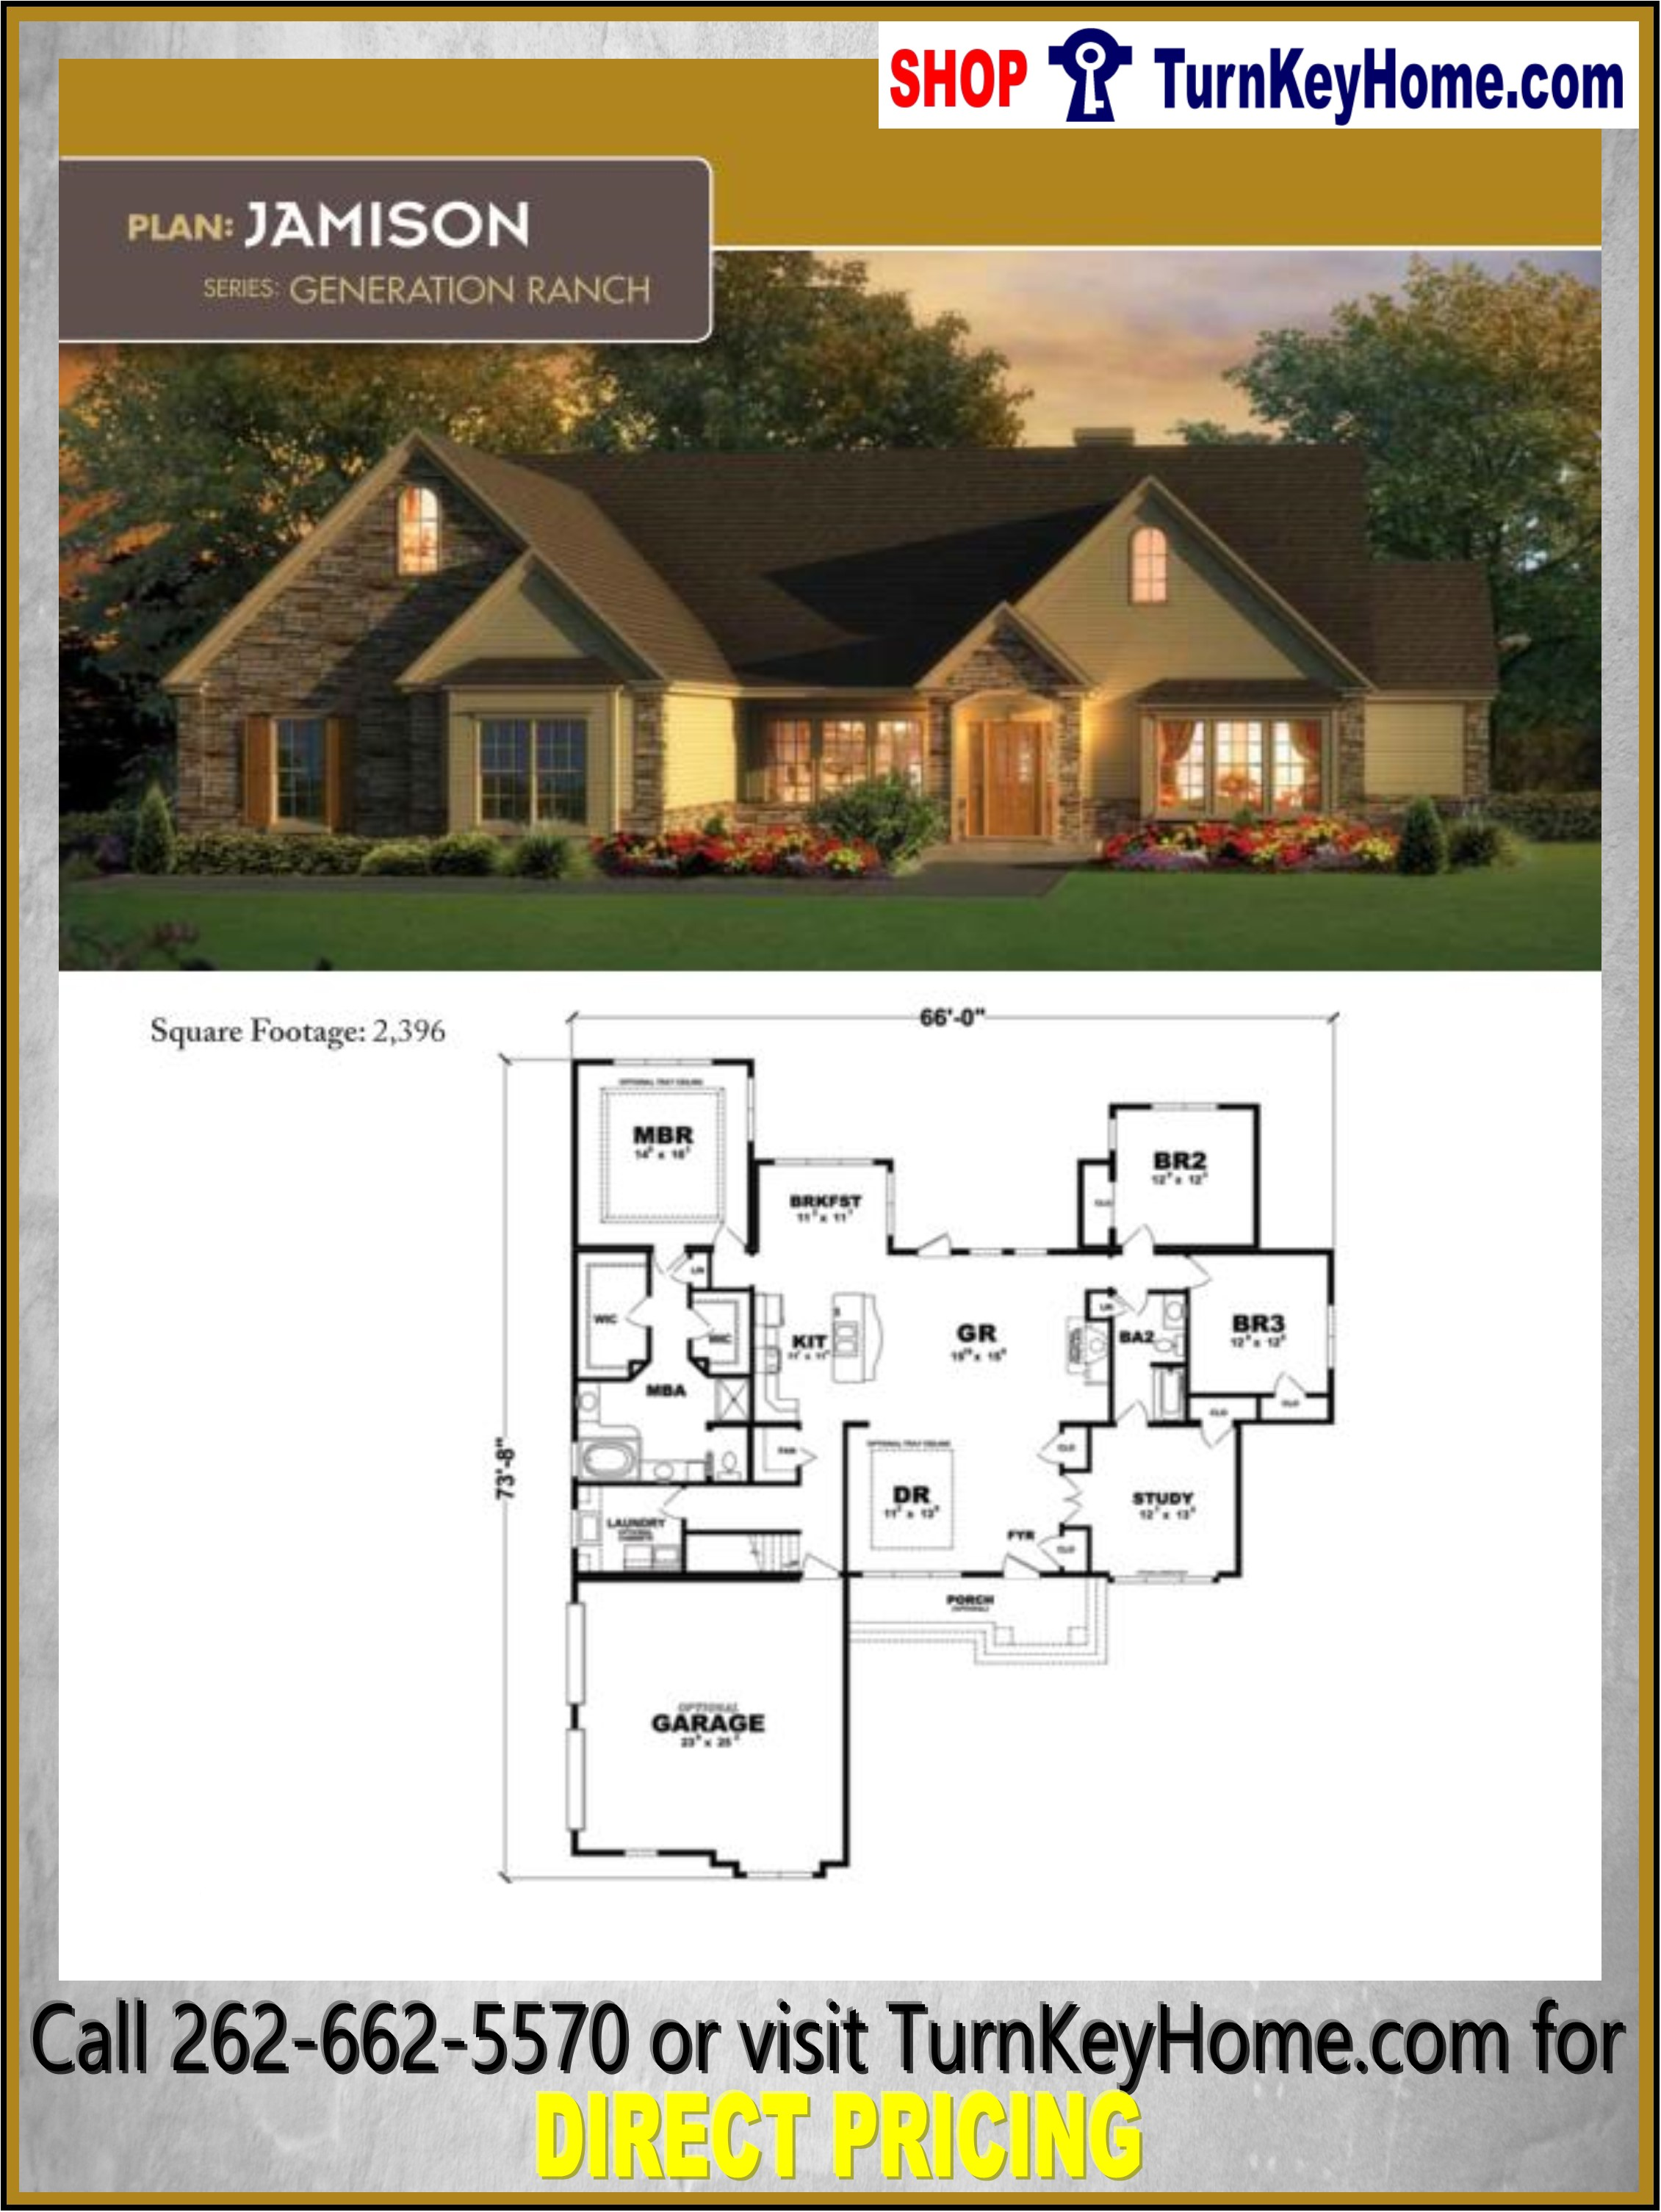 JAMISON Ranch Home 3 Bed 2 Bath Plan 2396 SF Priced from ...